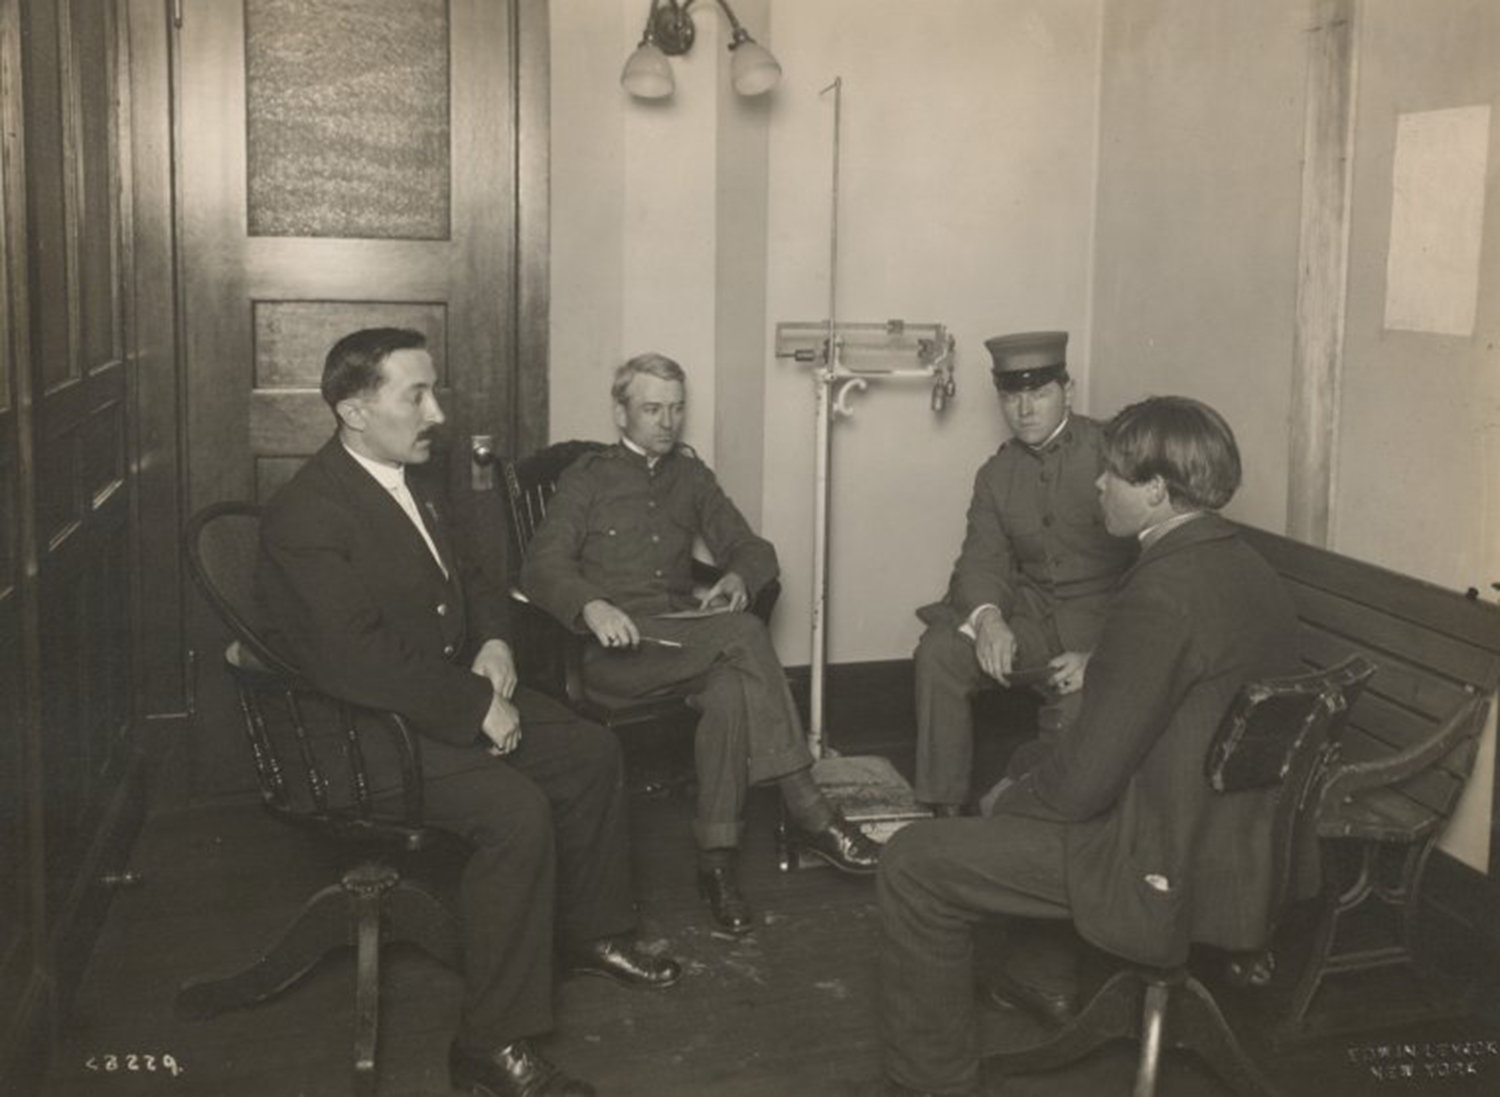 A private interview between a young immigrant and an Ellis Island official, A private interview between a young immigrant and an Ellis Island official. Two staff members [?] are also present., Levick, Edwin, NYPL Digital Library, Public Domain Mark